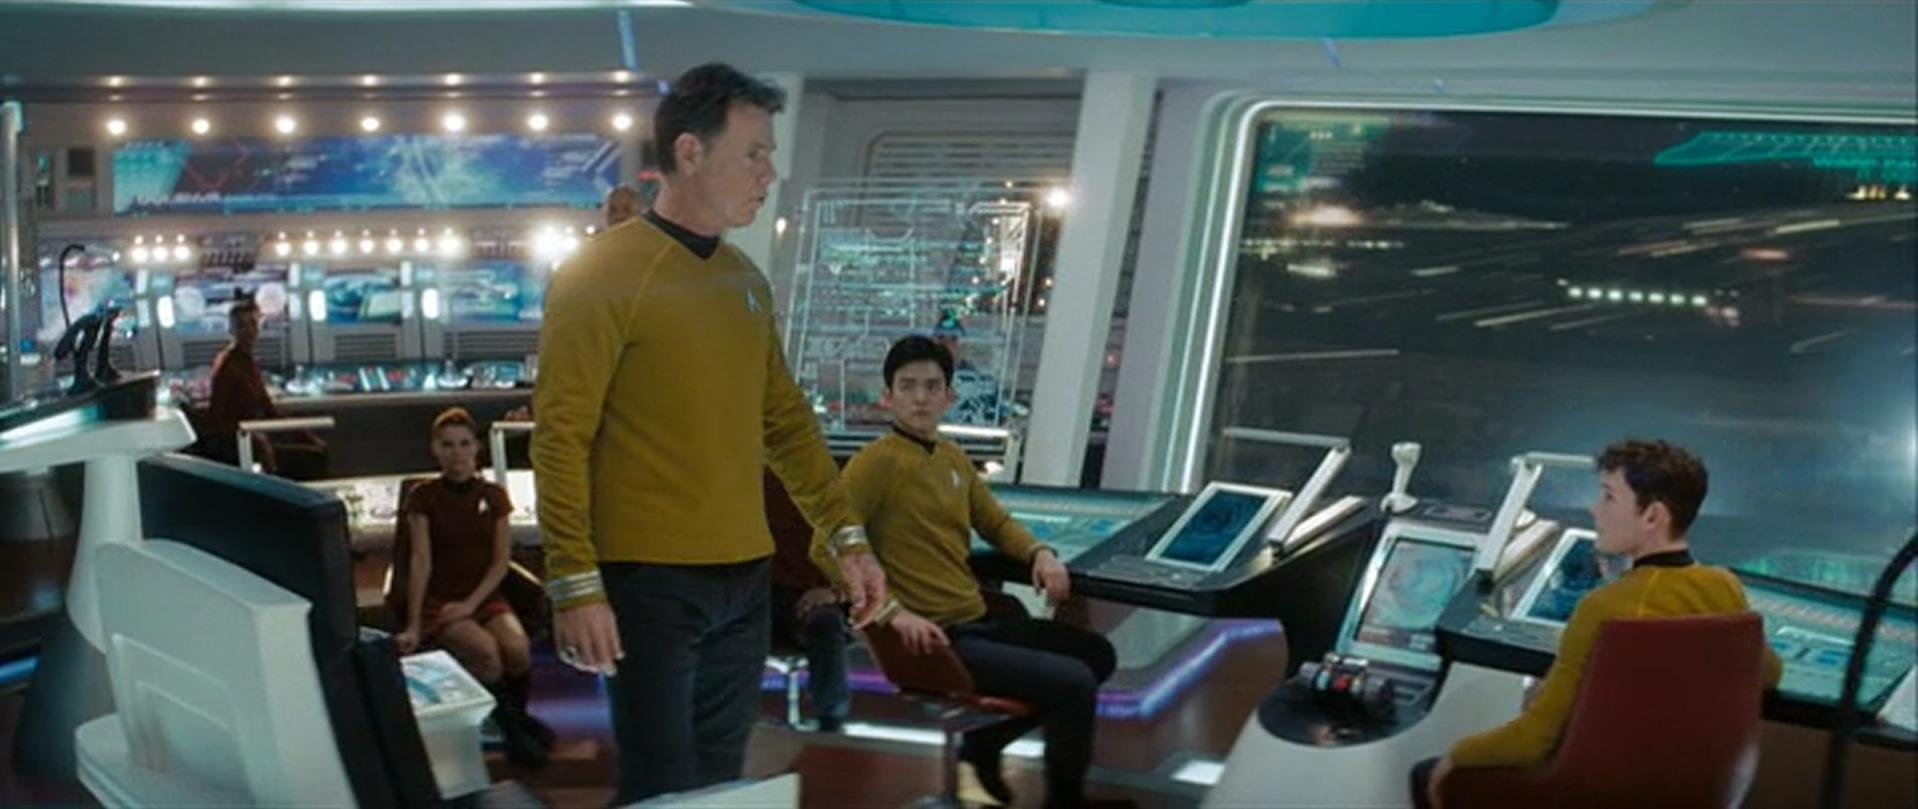 Star Trek What Prompted Such A Dramatic Change In